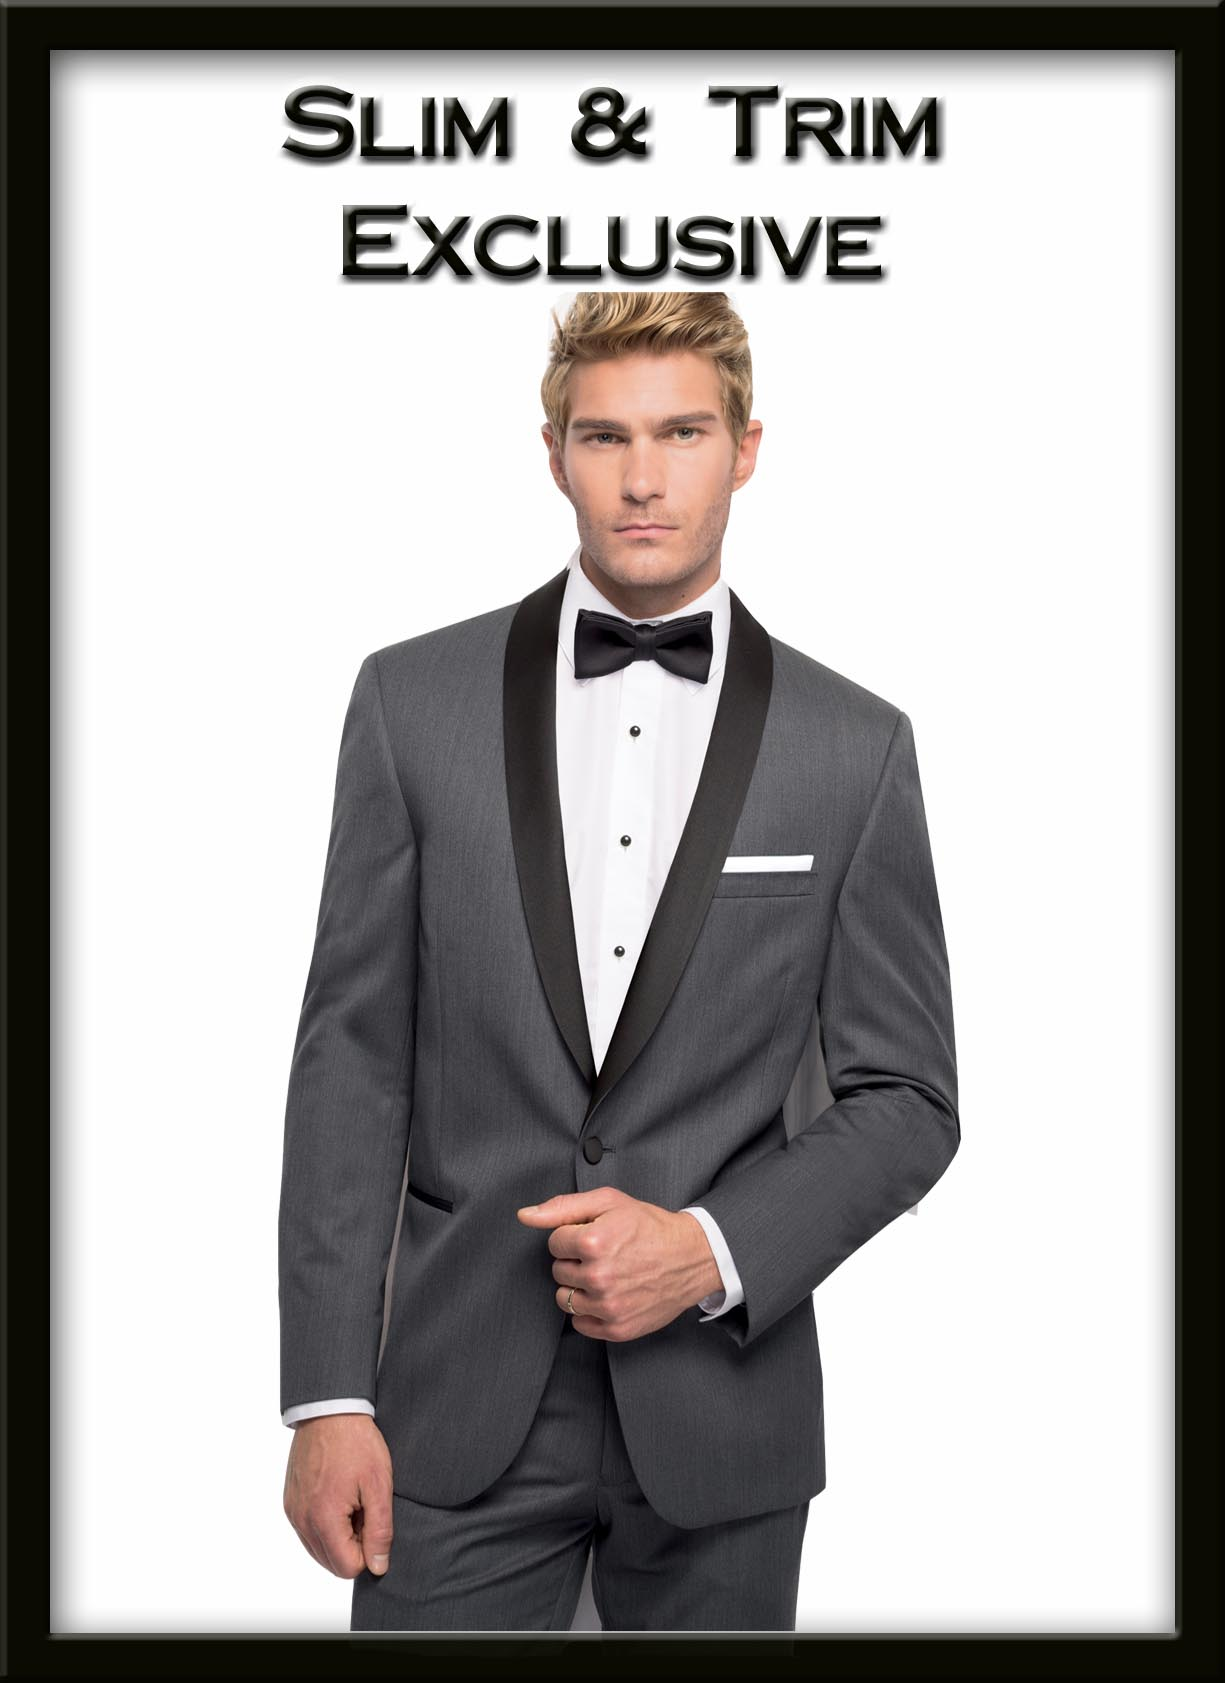 Lowell, MA Tuxedos & Formal Wear for Your Wedding, Prom Rentals or Purchases